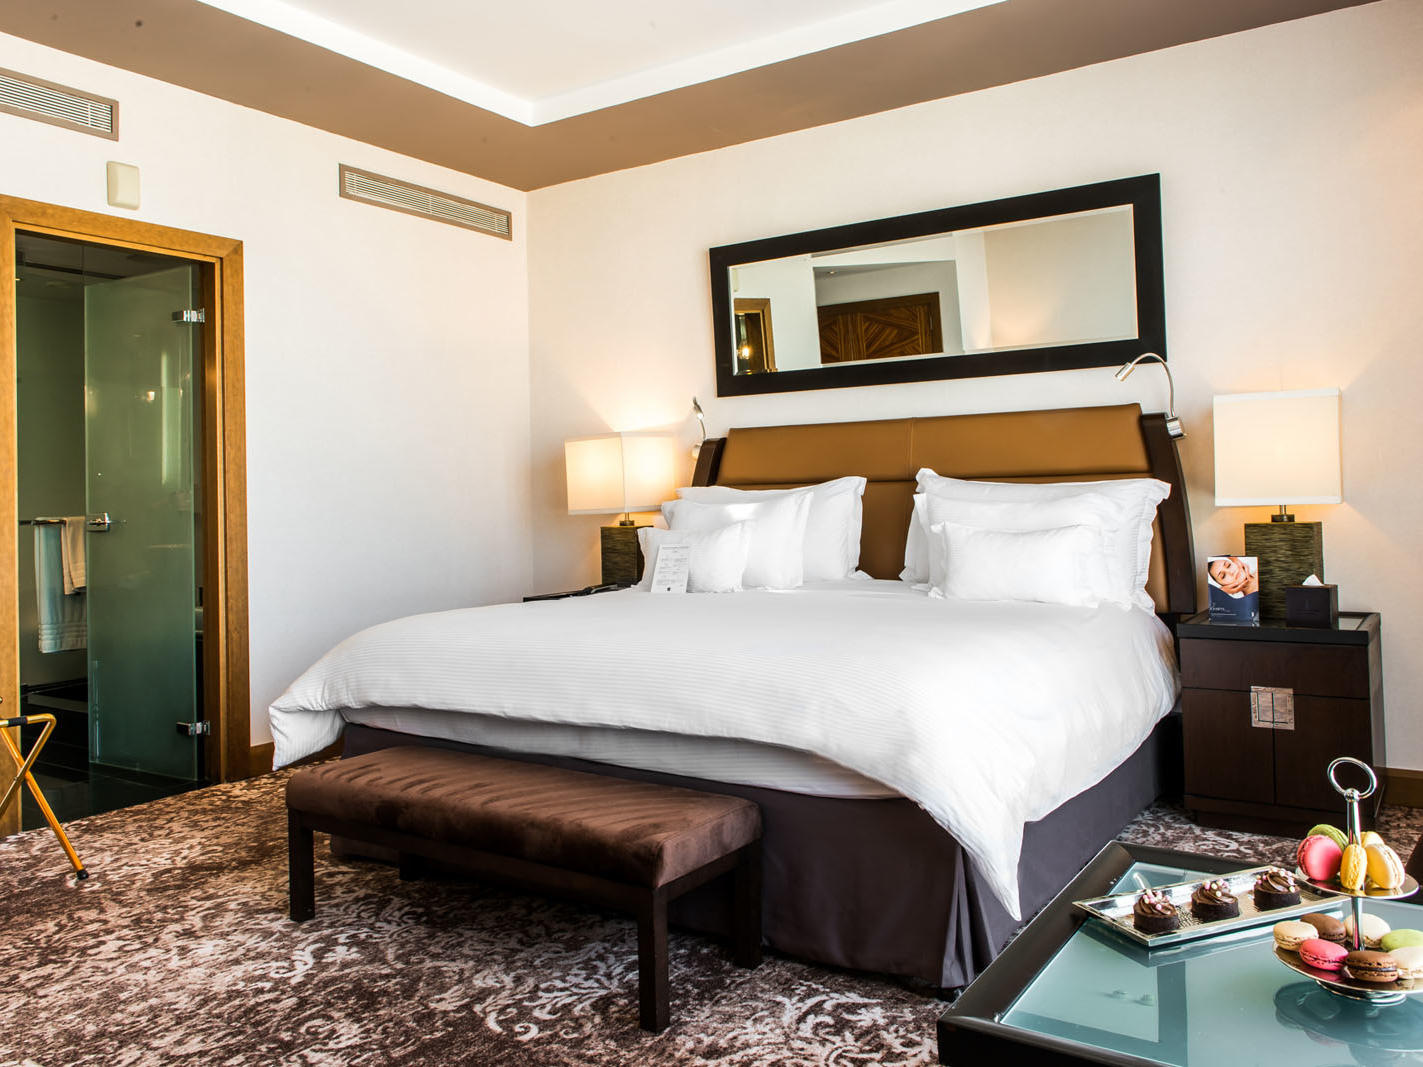 Deluxe Room at Kenzi Tower Hotel in Casablanca, Morocco